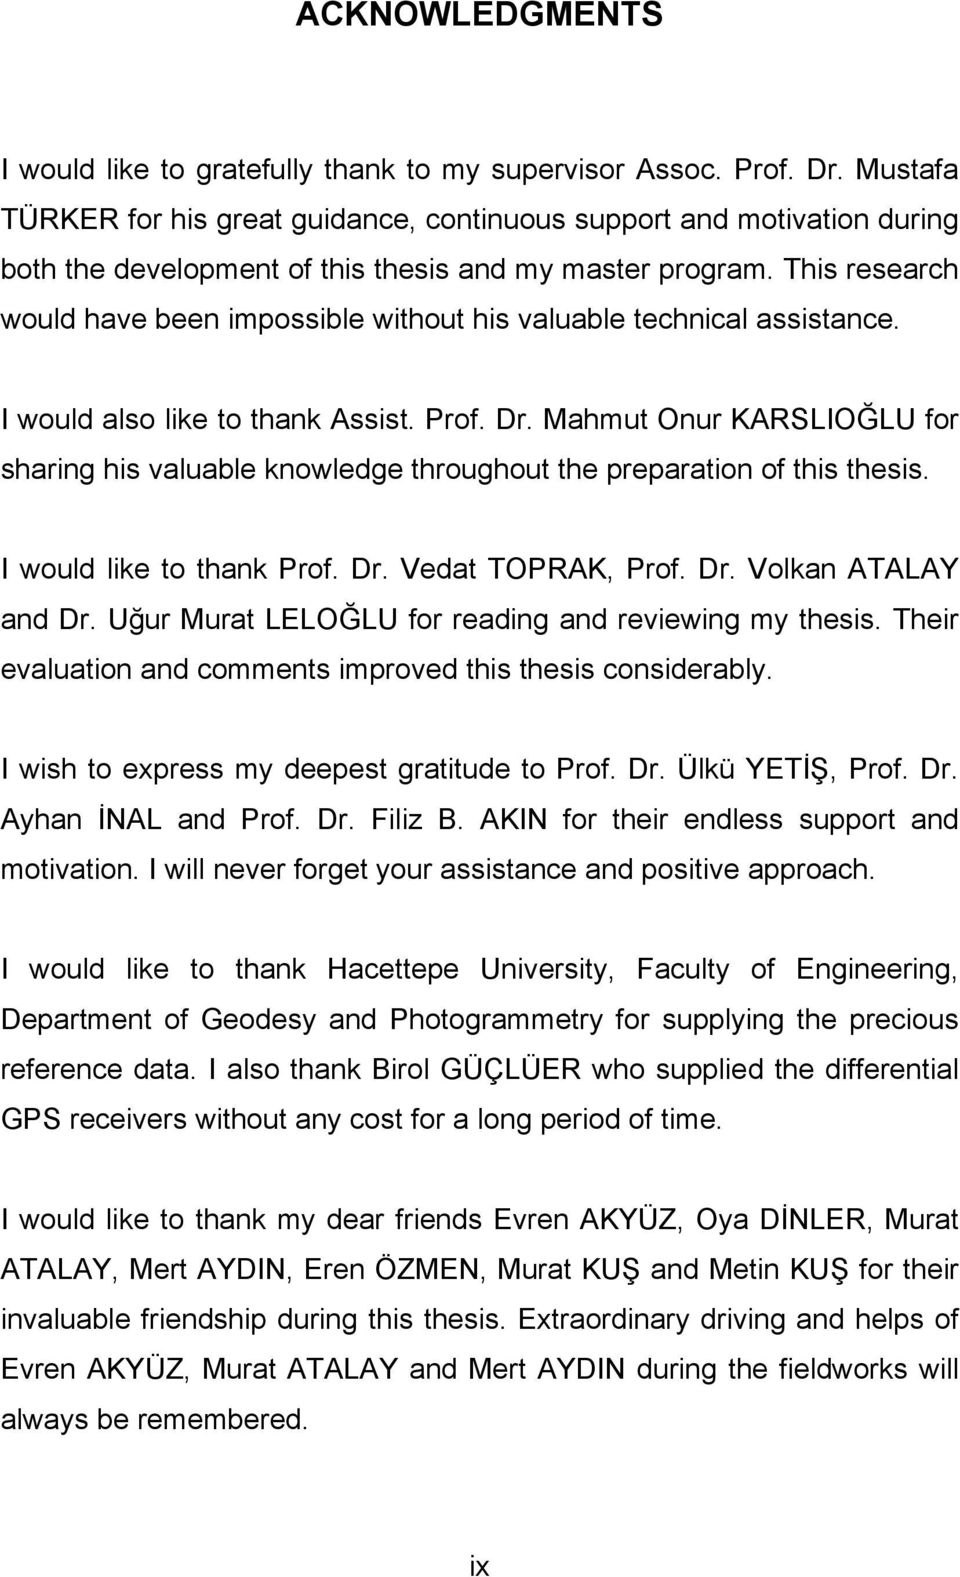 Ths research would have been mpossble wthout hs valuable techncal assstance. I would also lke to thank Assst. Prof. Dr.